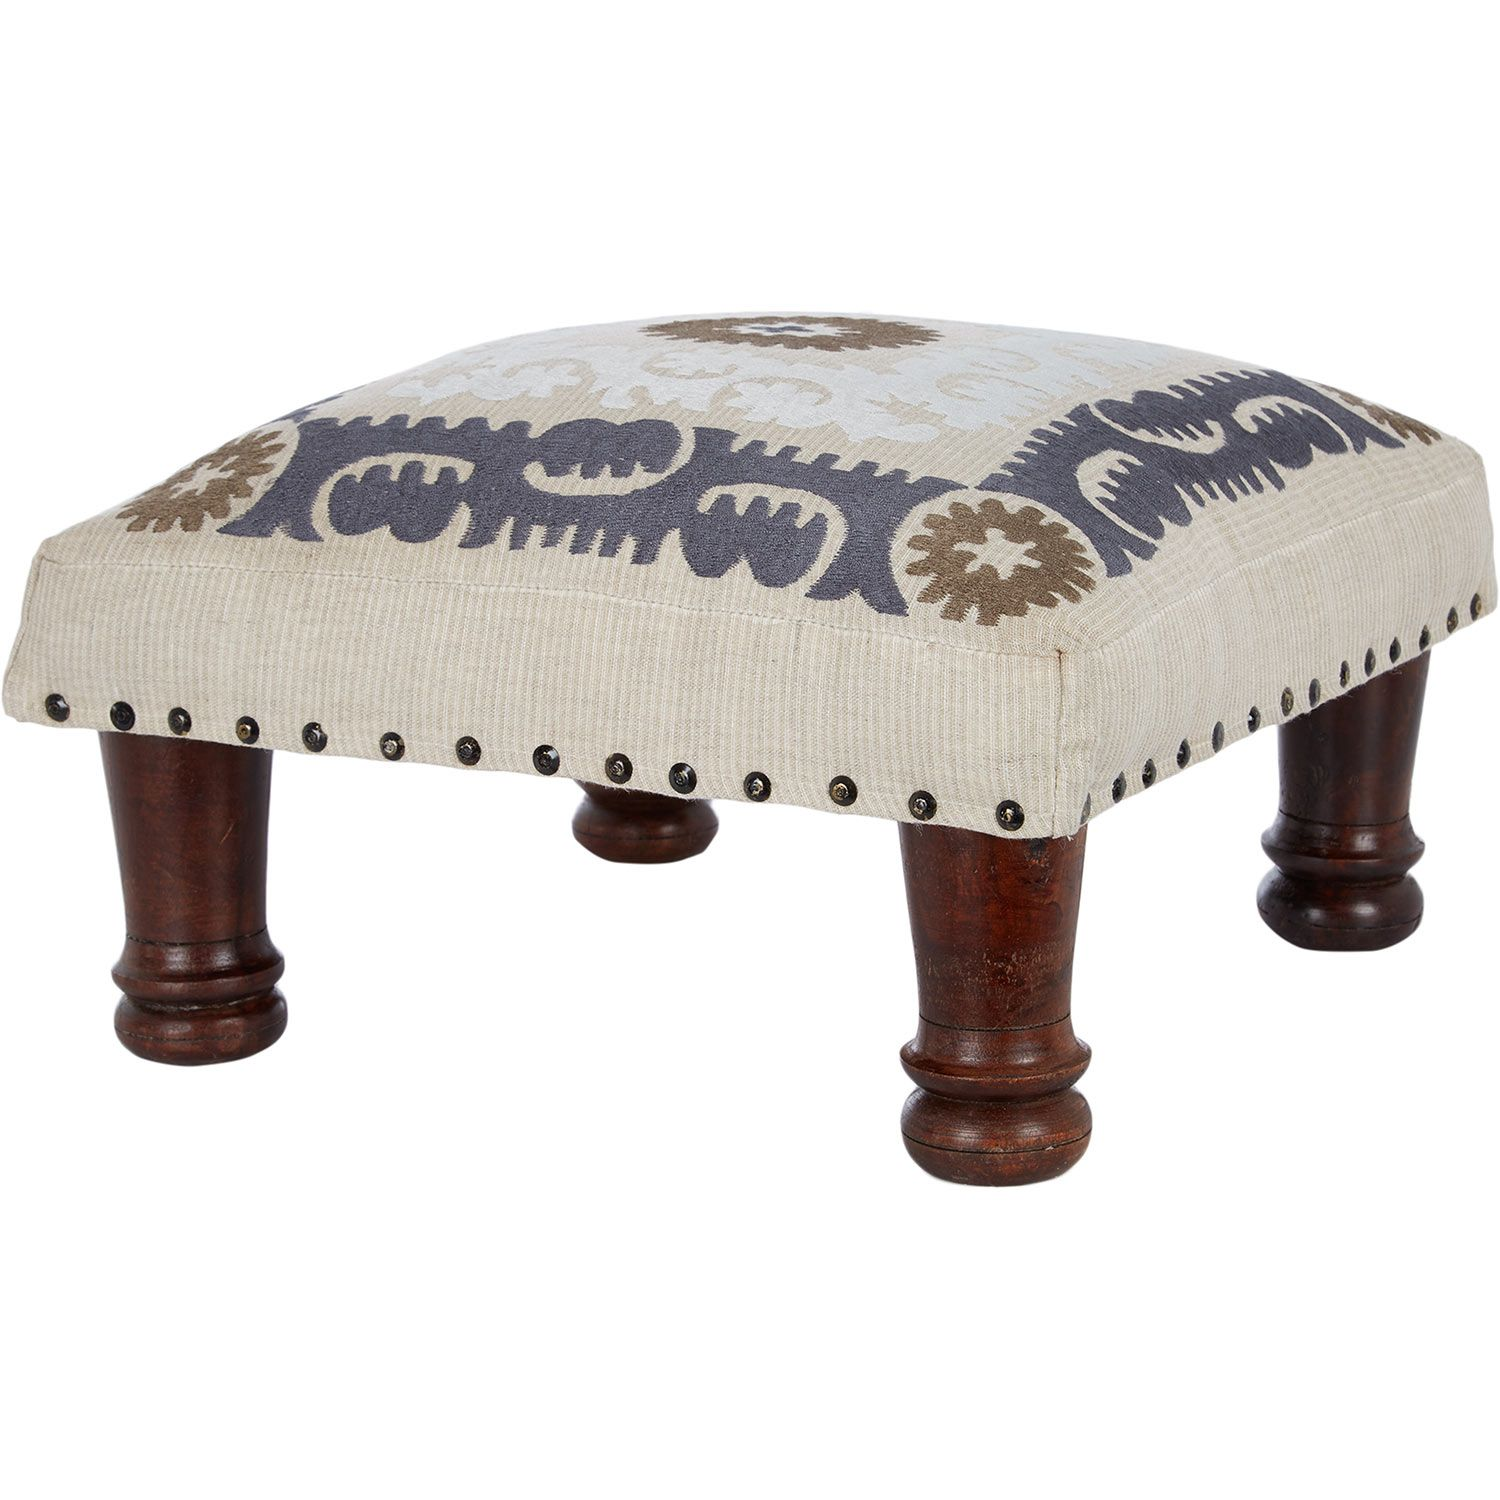 cream embroidered square foot stool tk maxx